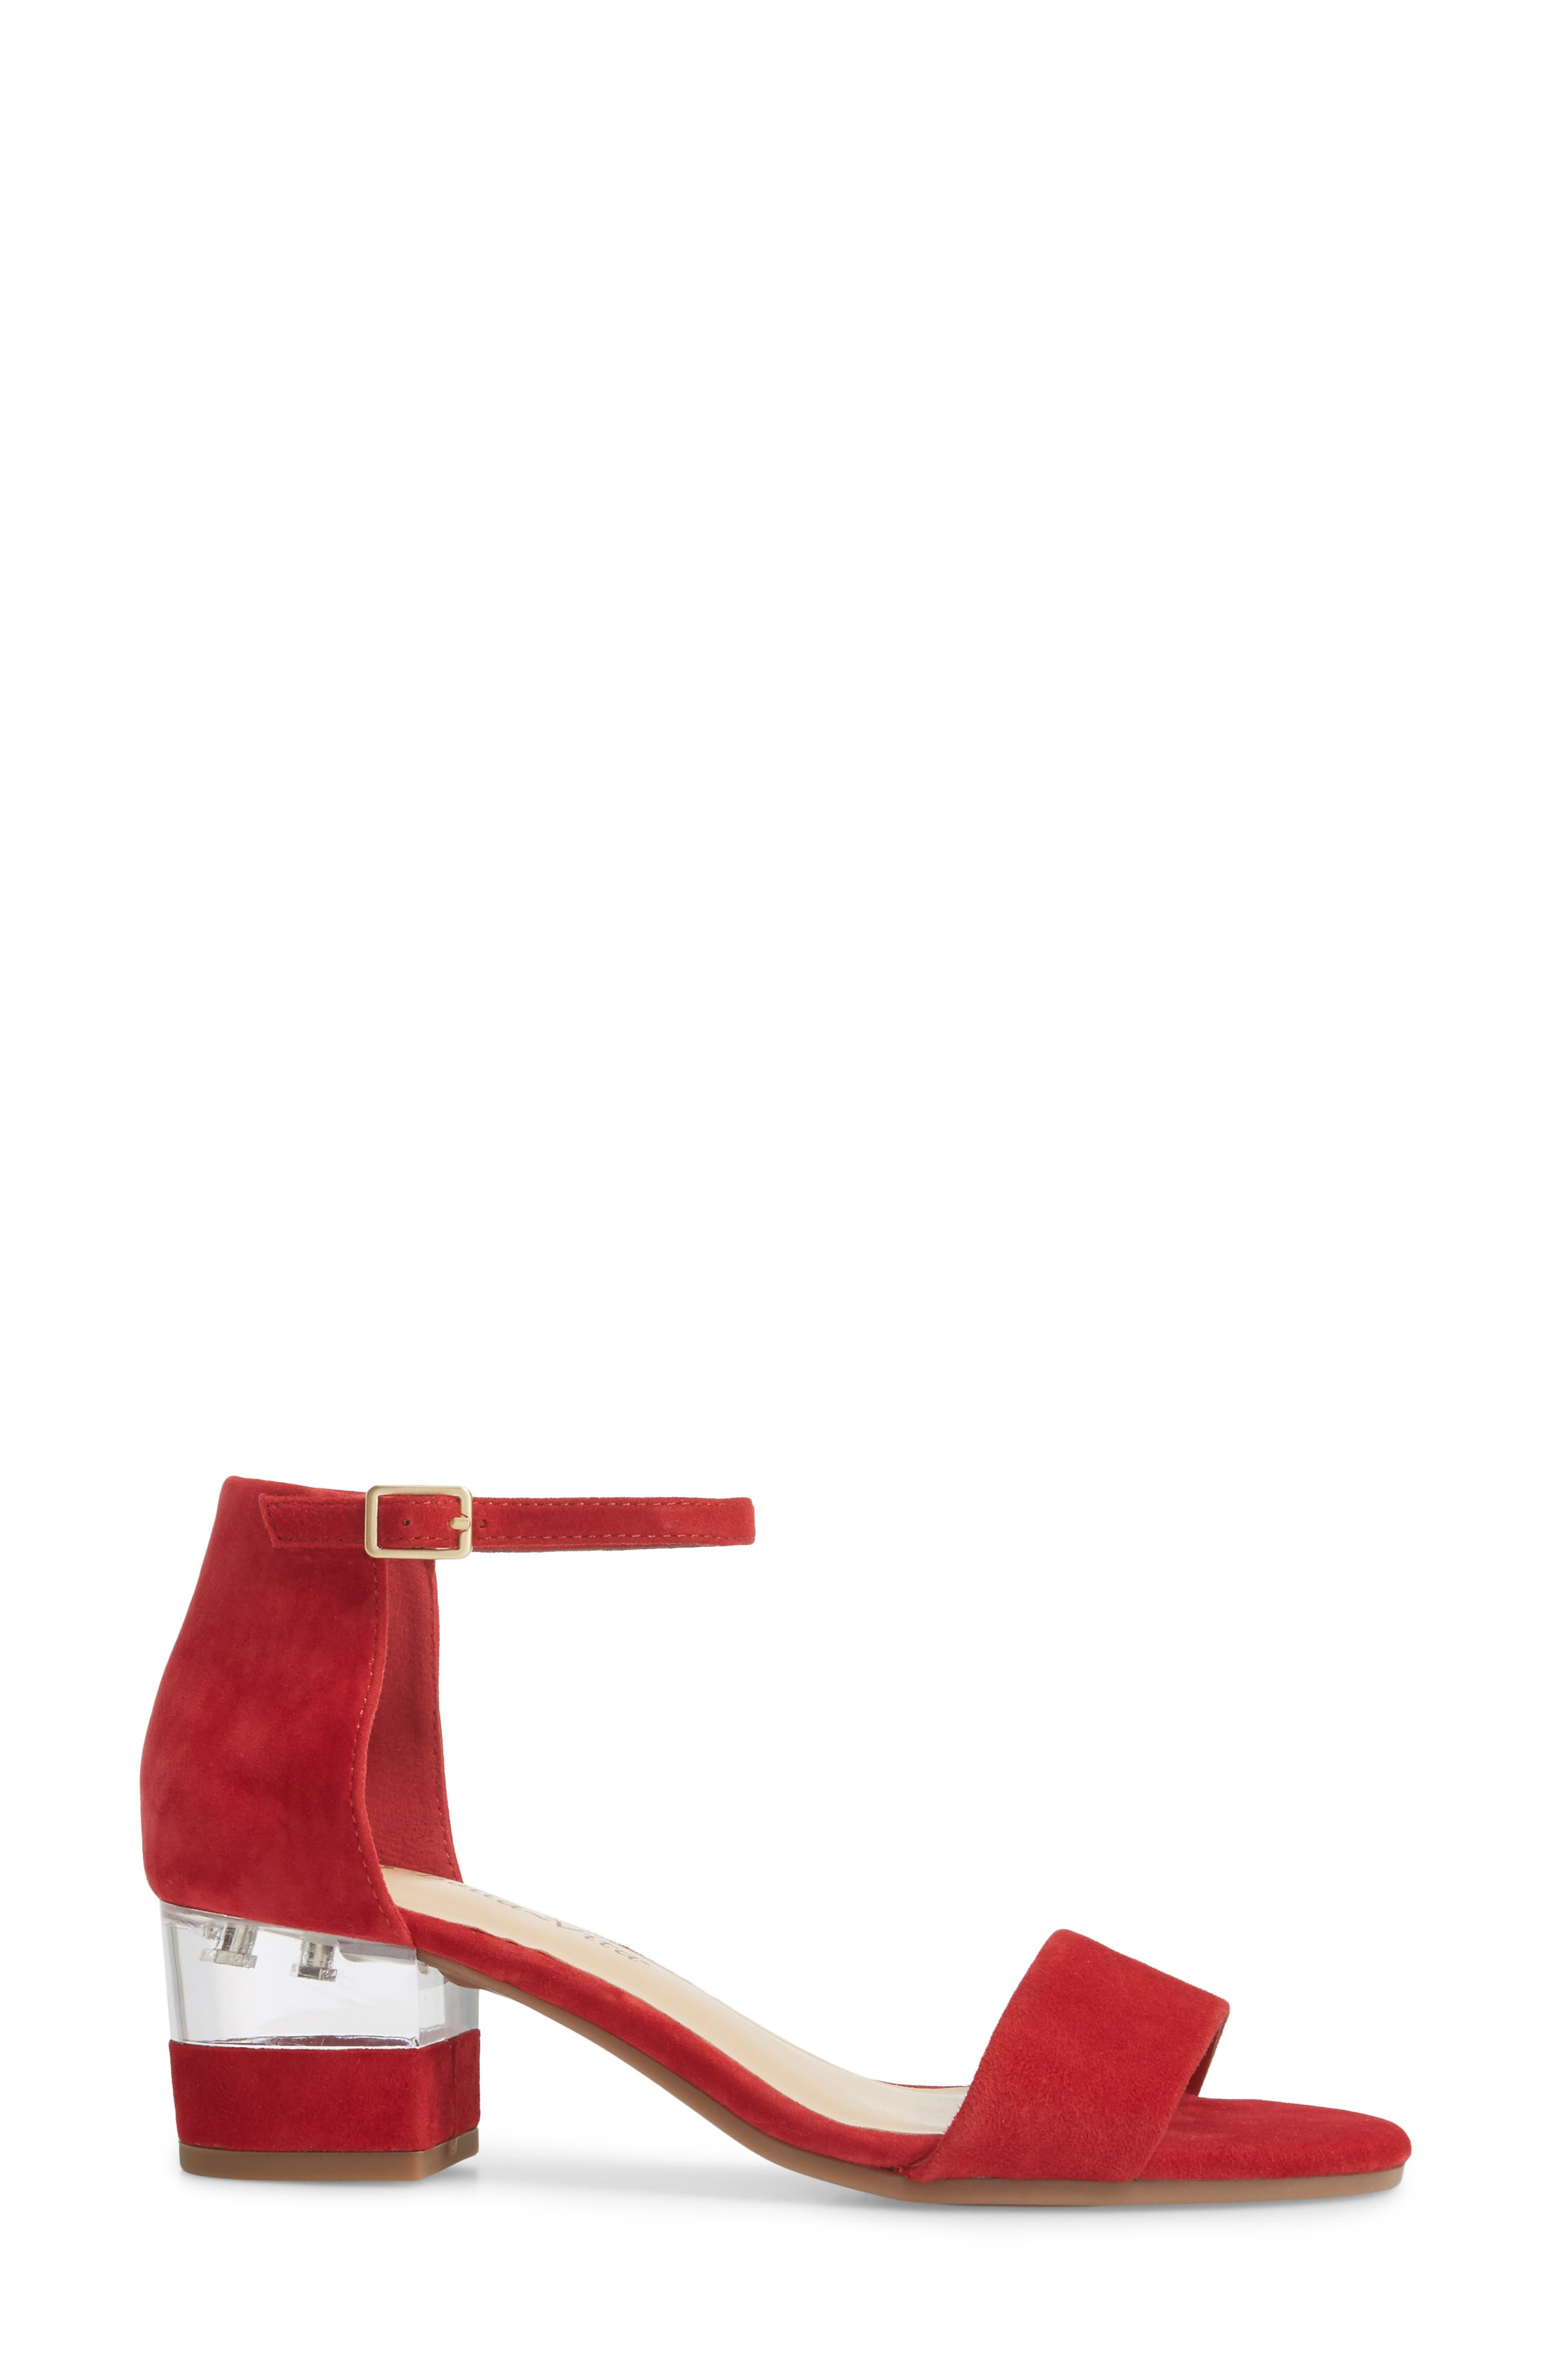 Fitz Block Heel Sandal,                             Alternate thumbnail 3, color,                             Red Suede